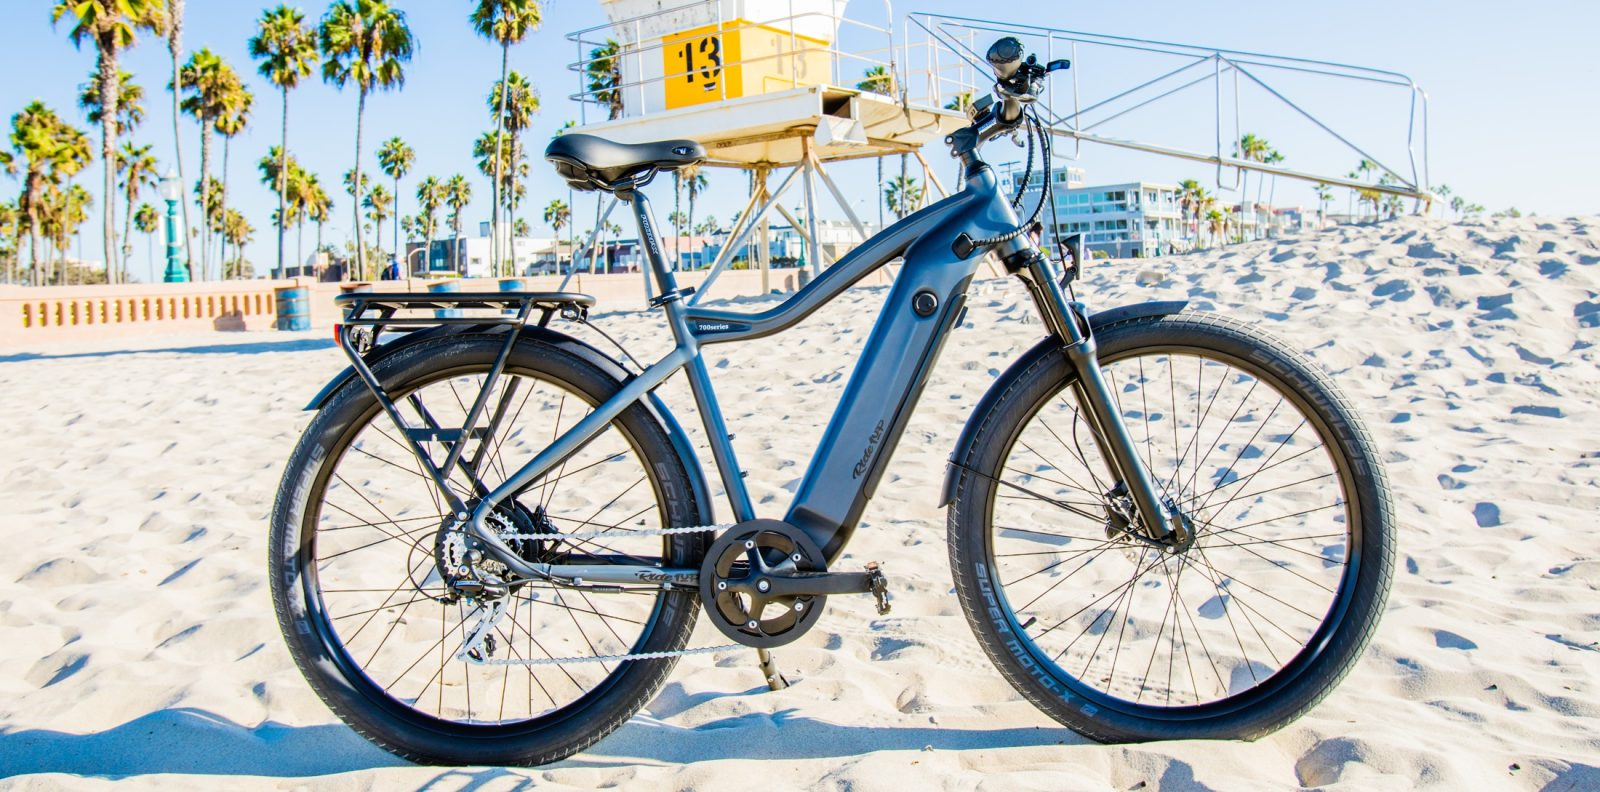 Ride1Up's new 27 mph flagship e-bike is now hitting the road in the US